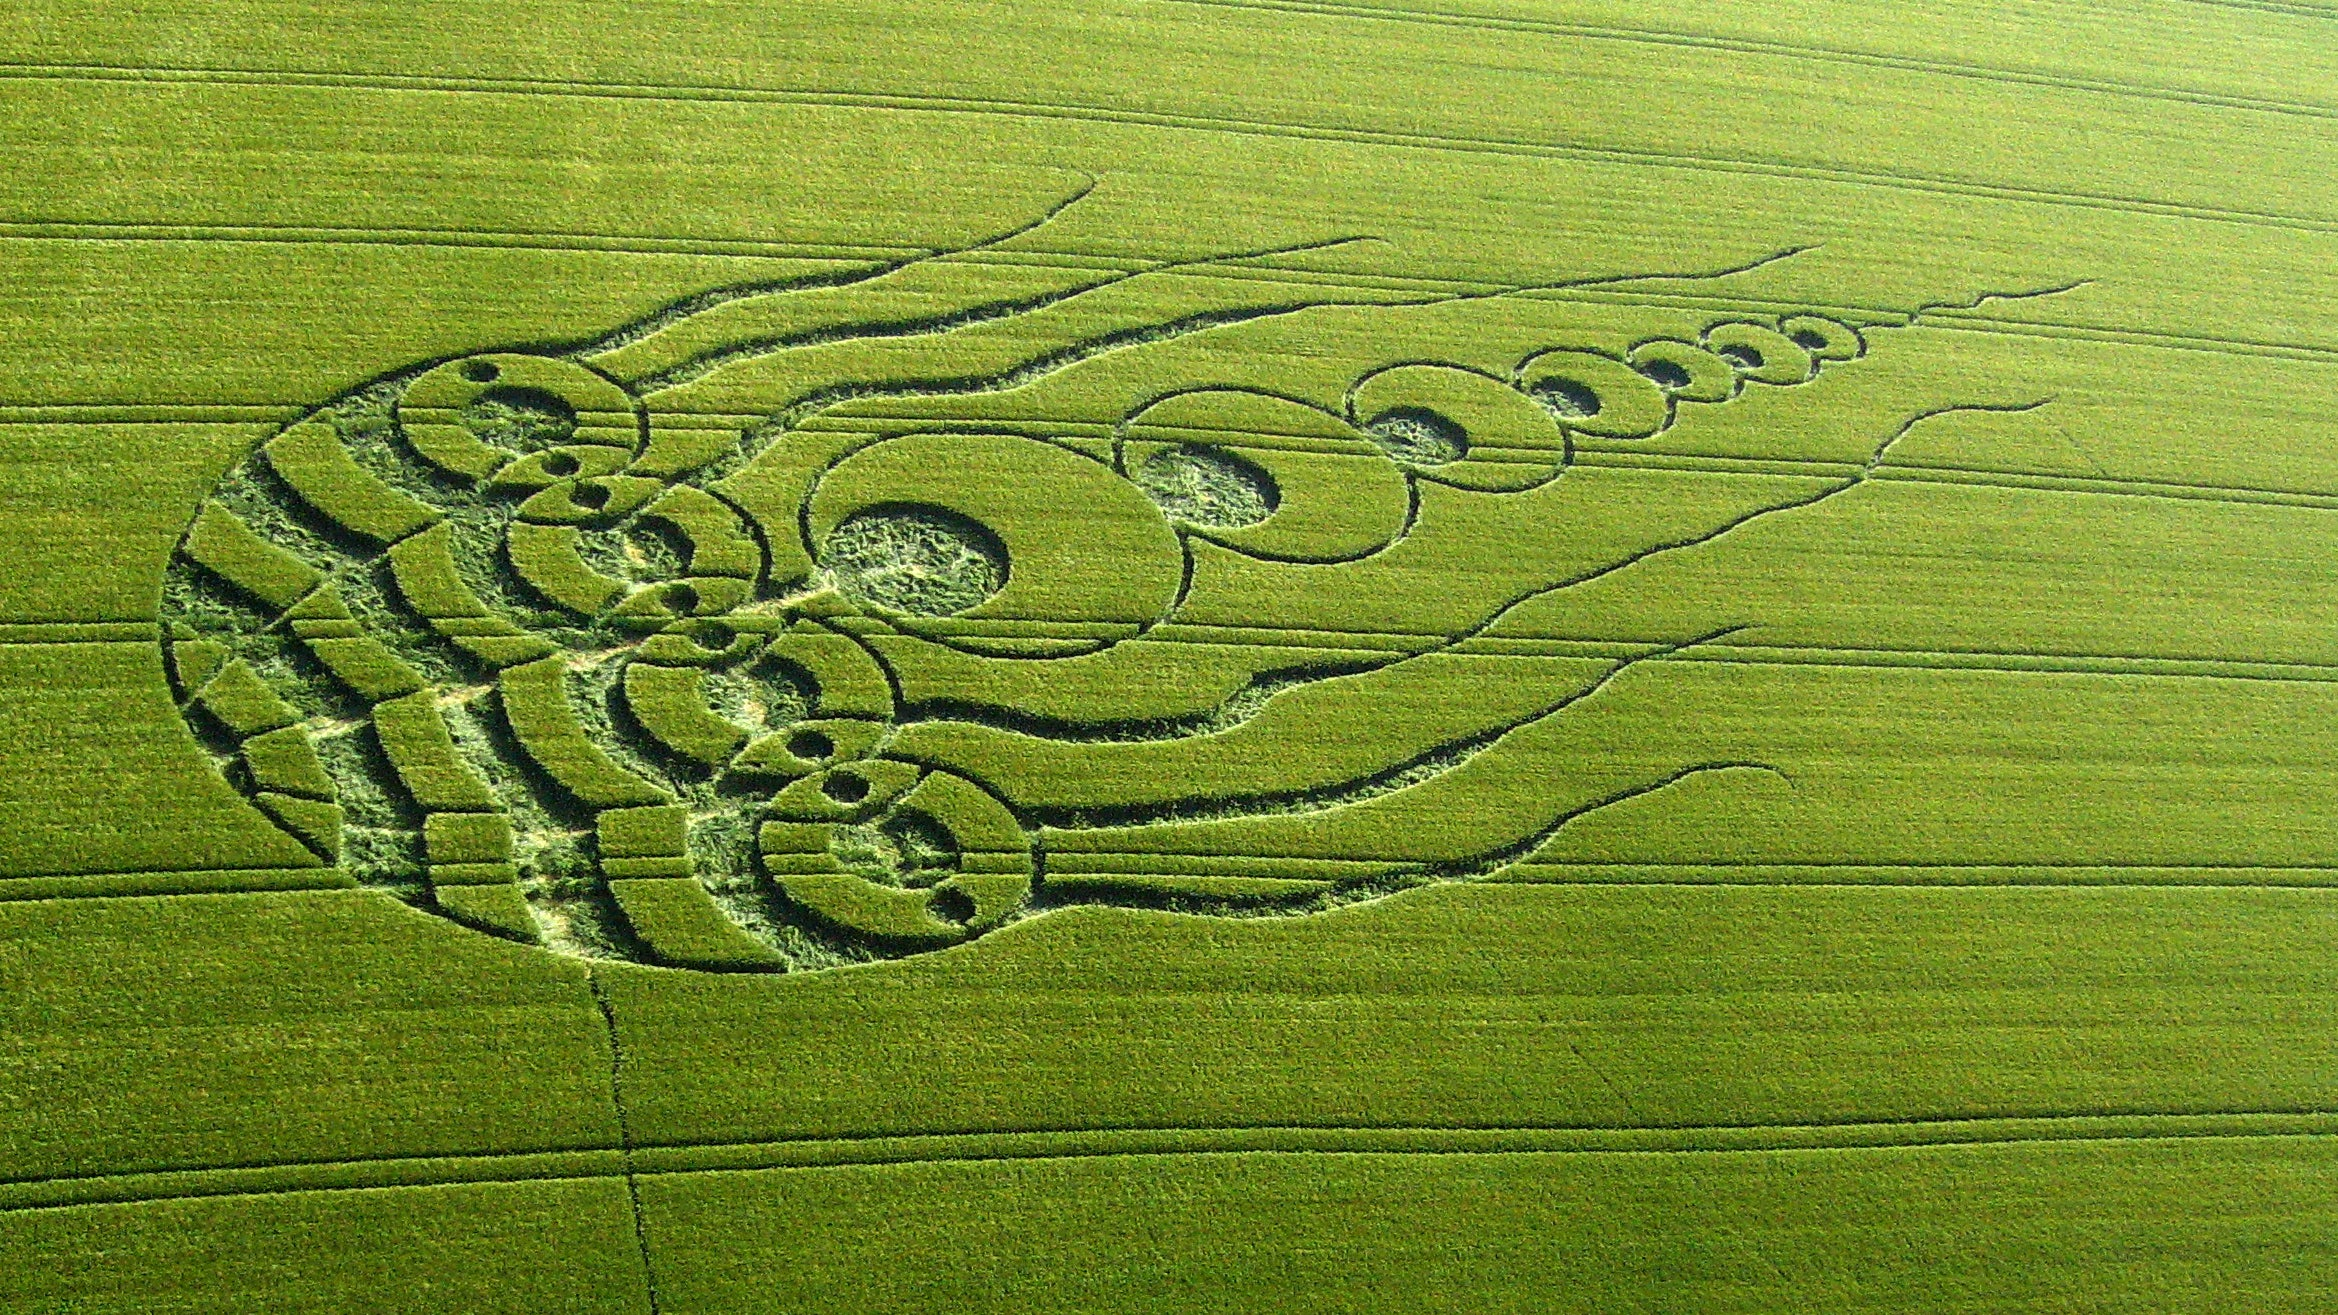 30 Incredible Photos Of Crop Circles